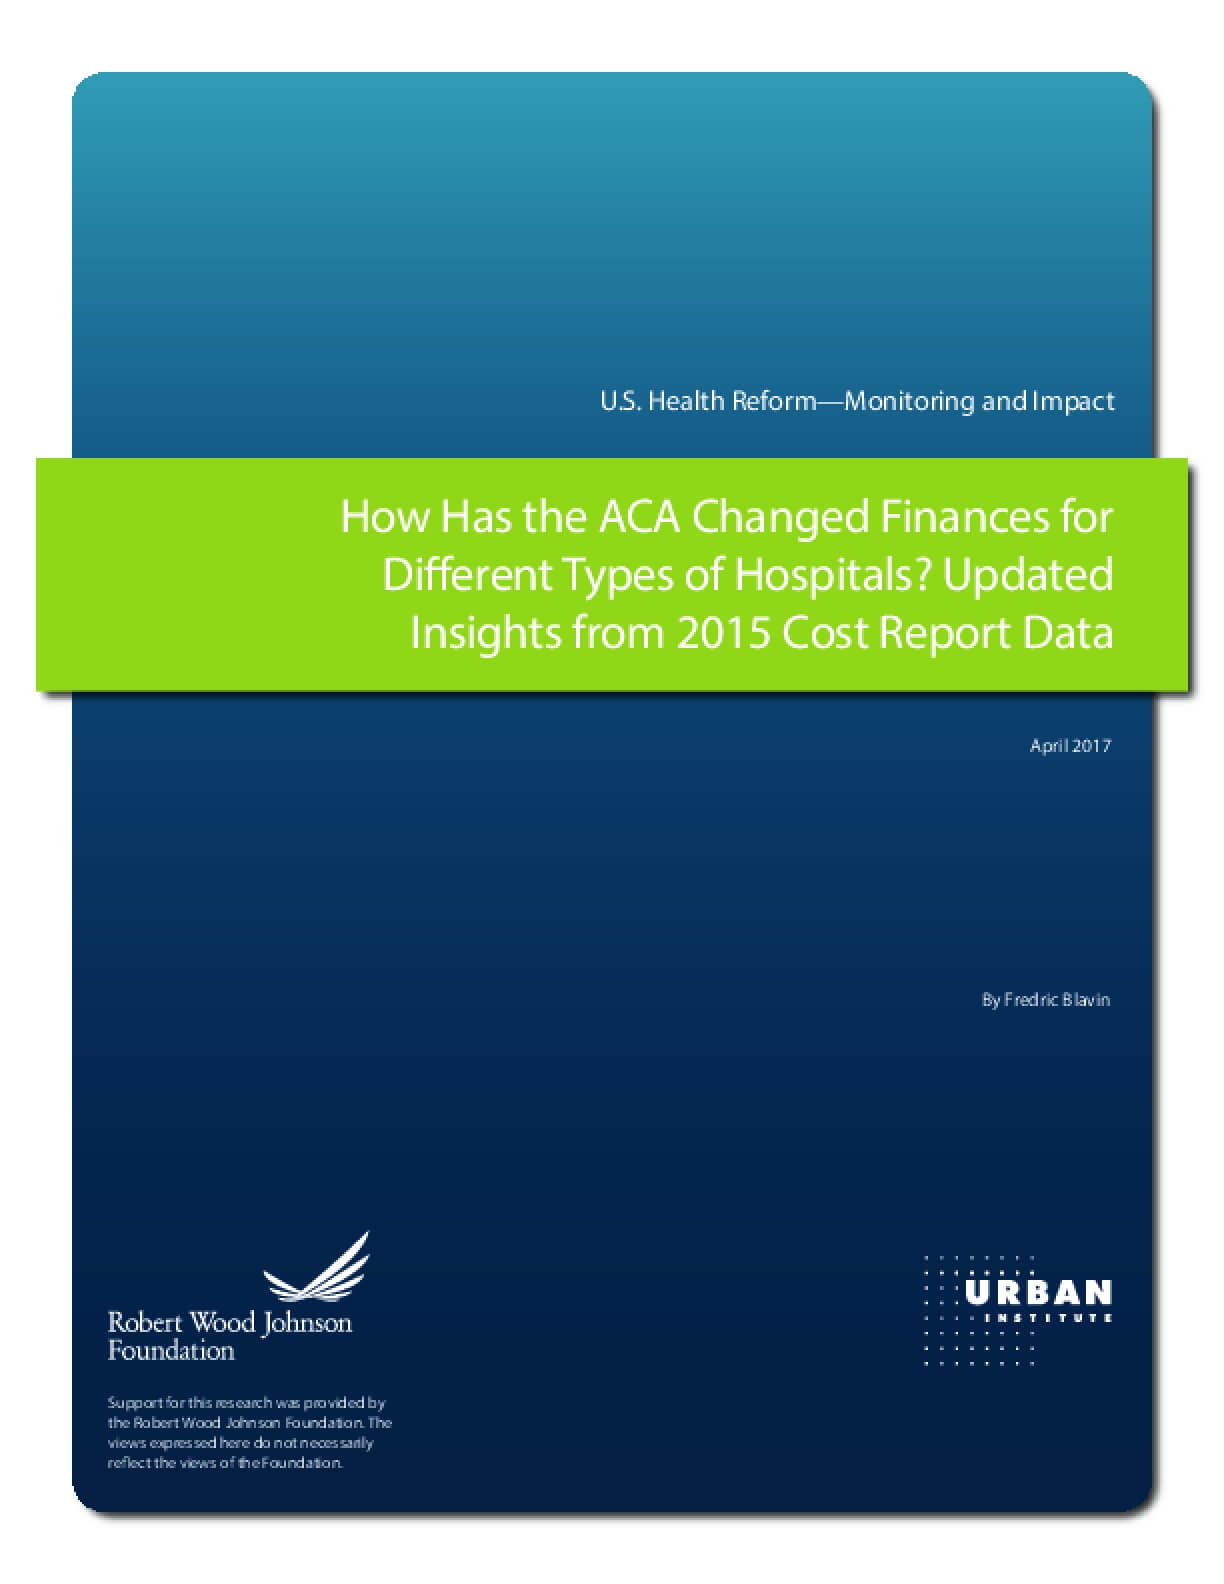 How Has the ACA Changed Finances for Different Types of Hospitals?  Updated  Insights from 2015 Cost Report Data